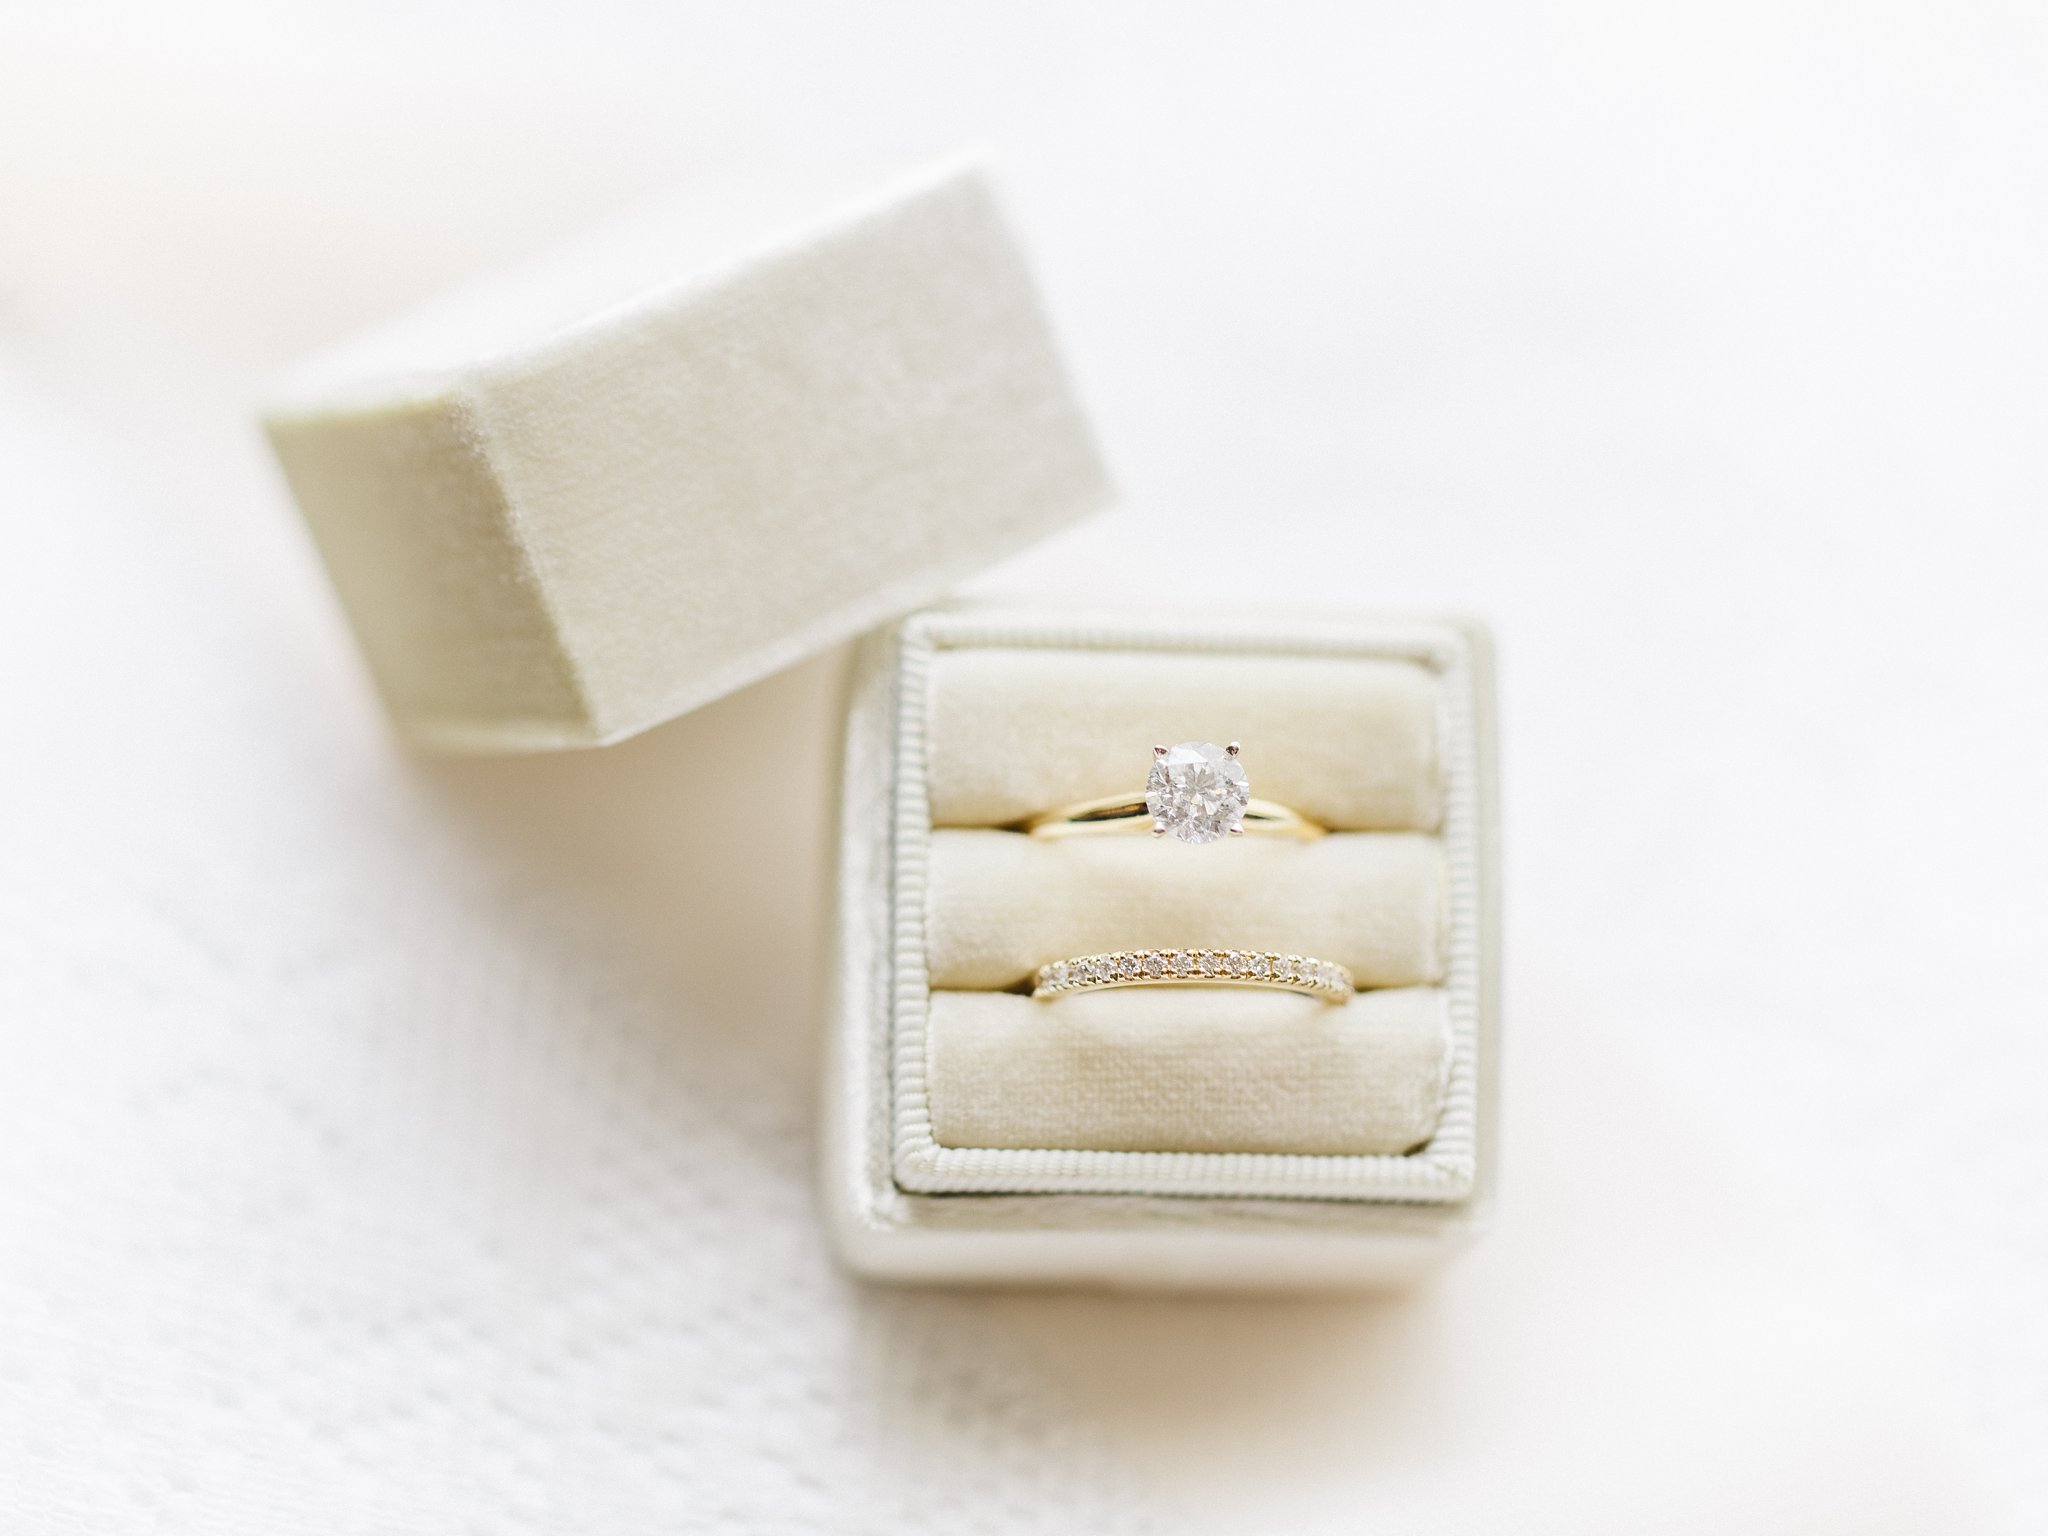 Beige Mrs. Box with gold Diamond rings married at Stonefields, Amy Pinder Photography